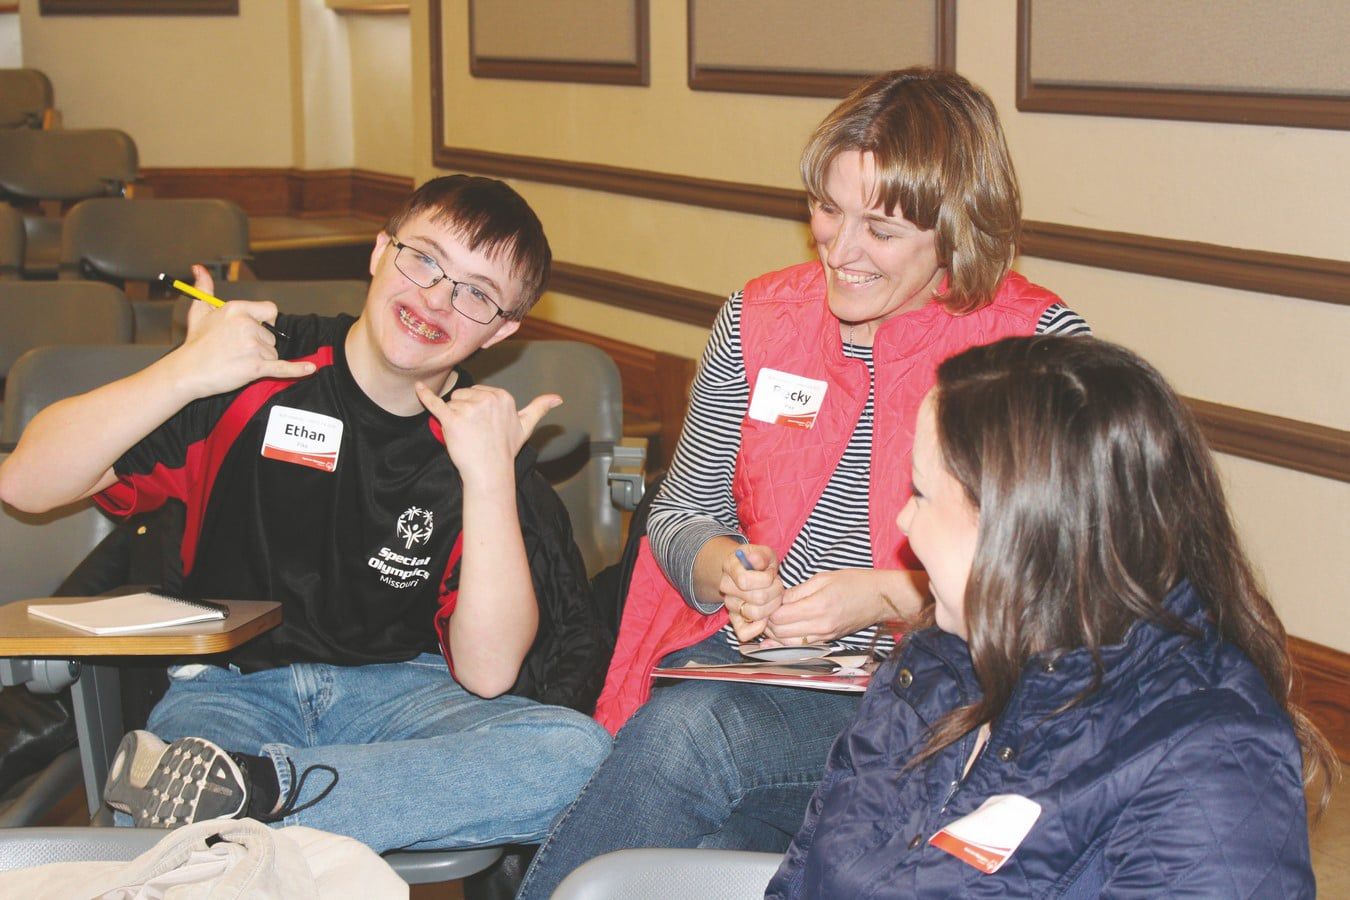 An athlete-leader looks at and smiles for the camera during an Athlete Leadership class while their mentor looks on and smiles